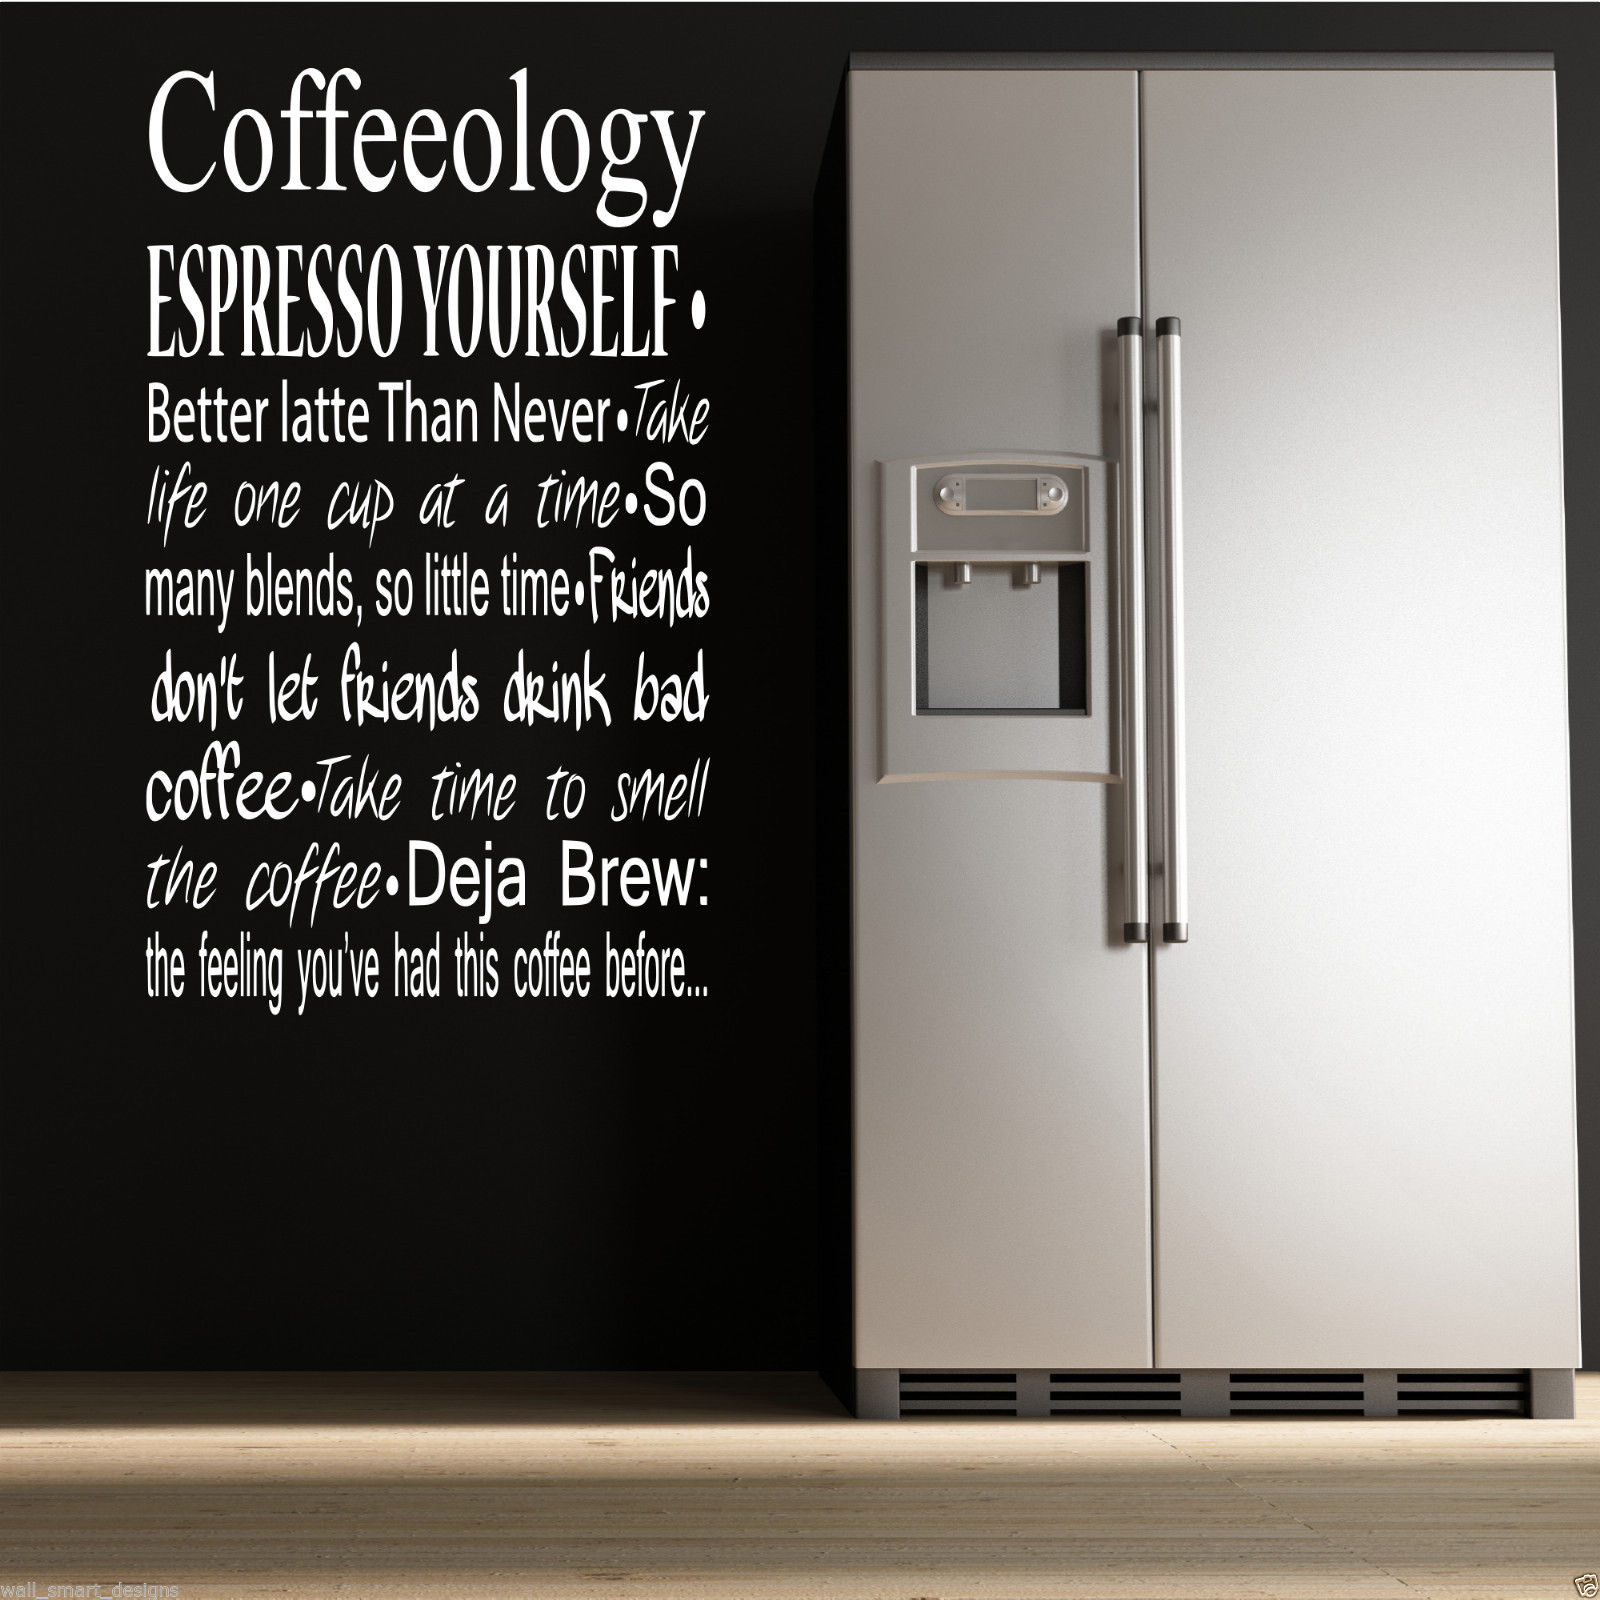 coffee coffeeology kitchen wall art sticker quote decal mural coffee coffeeology kitchen wall art sticker quote decal mural stencil transfer